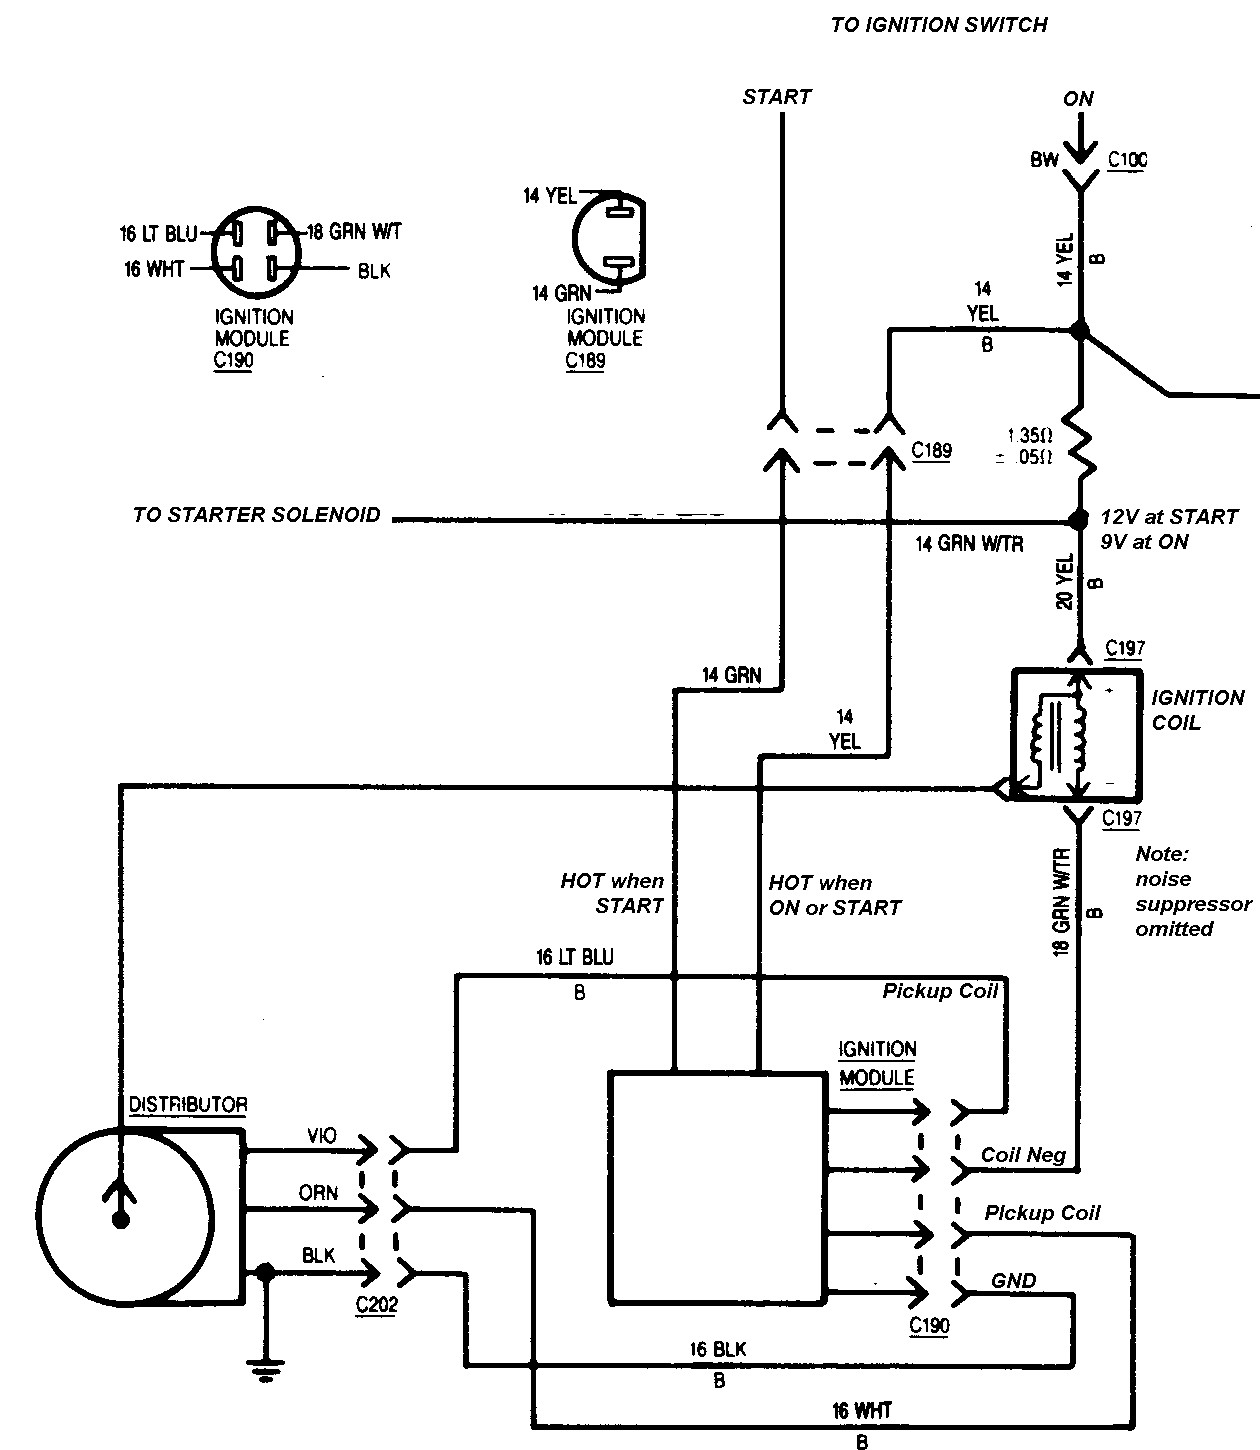 Chevy 5 7 Spark Plug Wiring Diagram Library 97 350 Engine For 454 Motor 1990 Basic U2022 Rh Rnetcomputer Co 1988